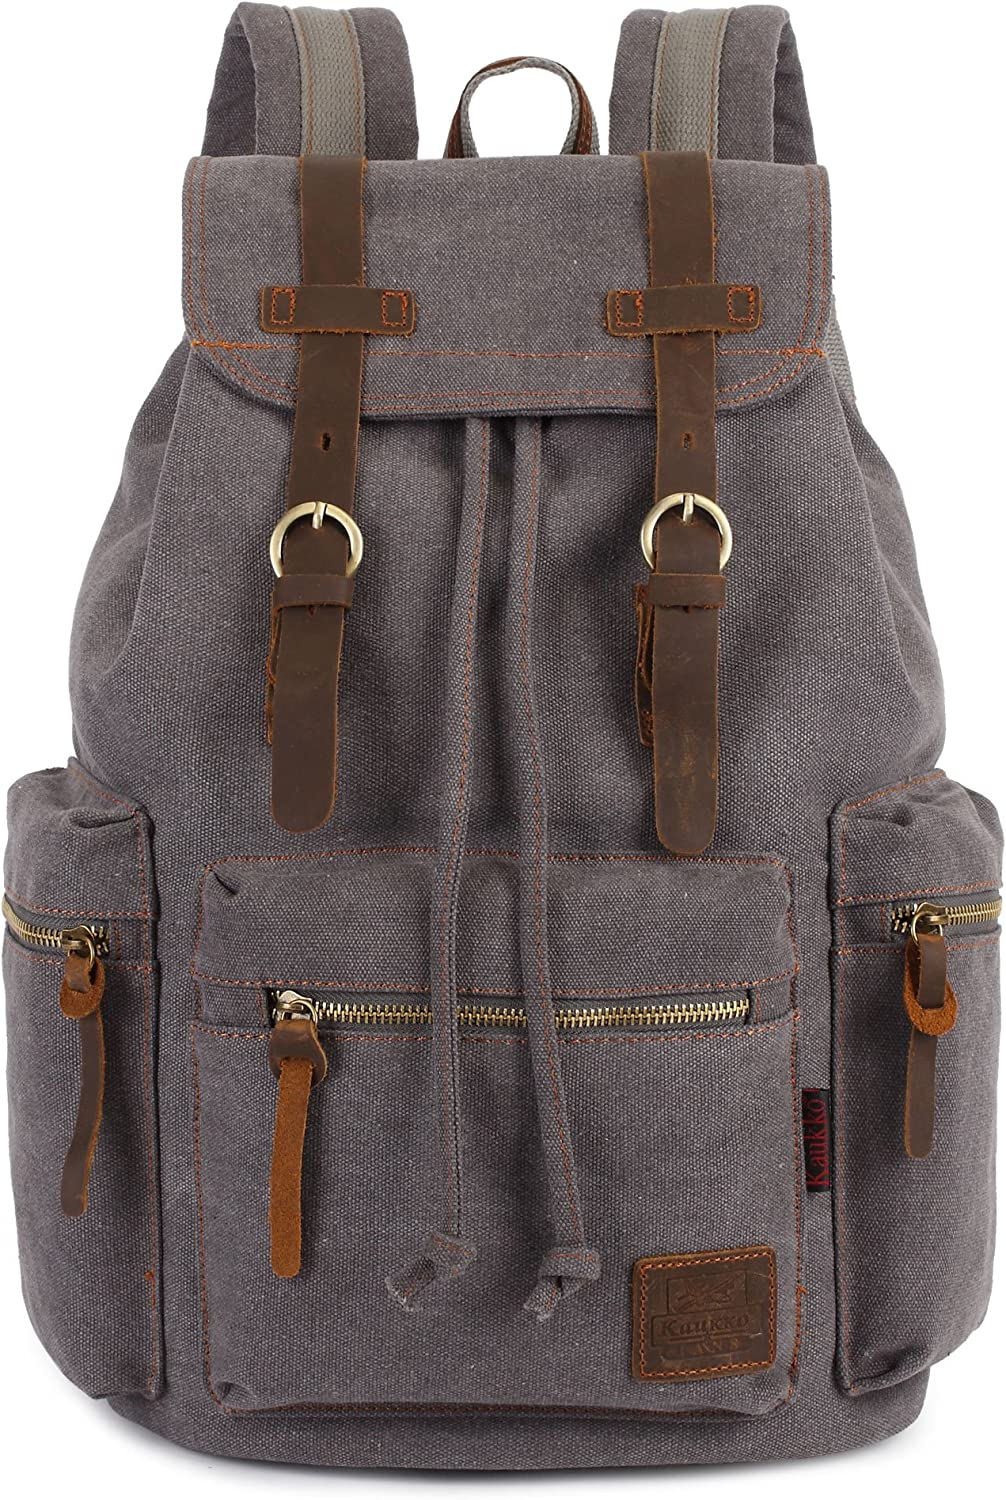 Leaper Vintage Canvas Backpack Casual Rucksack